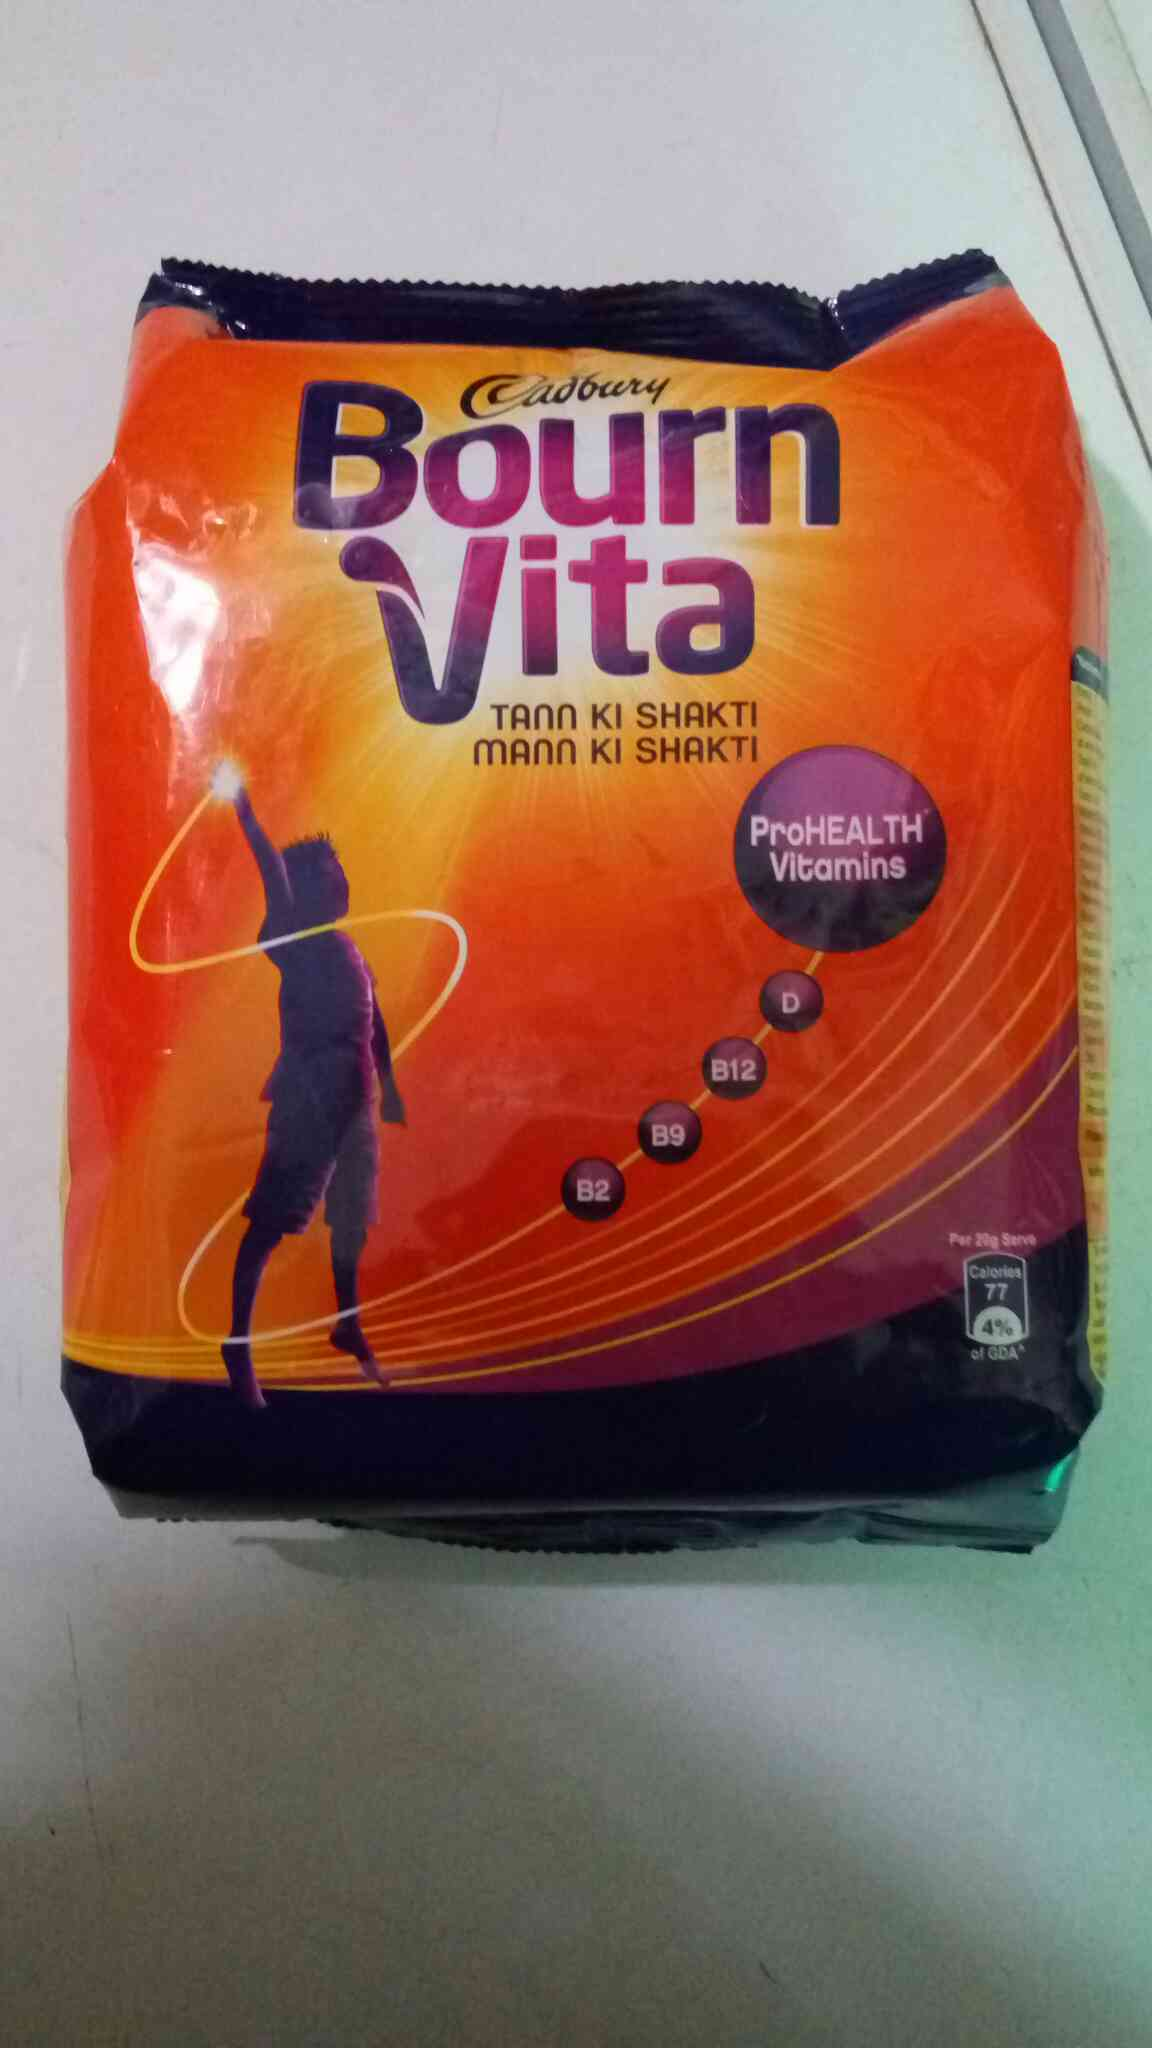 WE ARE SERVING YOU A BEST QUALITY OF BOURNVITA FROM GOEL GENERAL STORE IN MUKHERJEE NAGAR